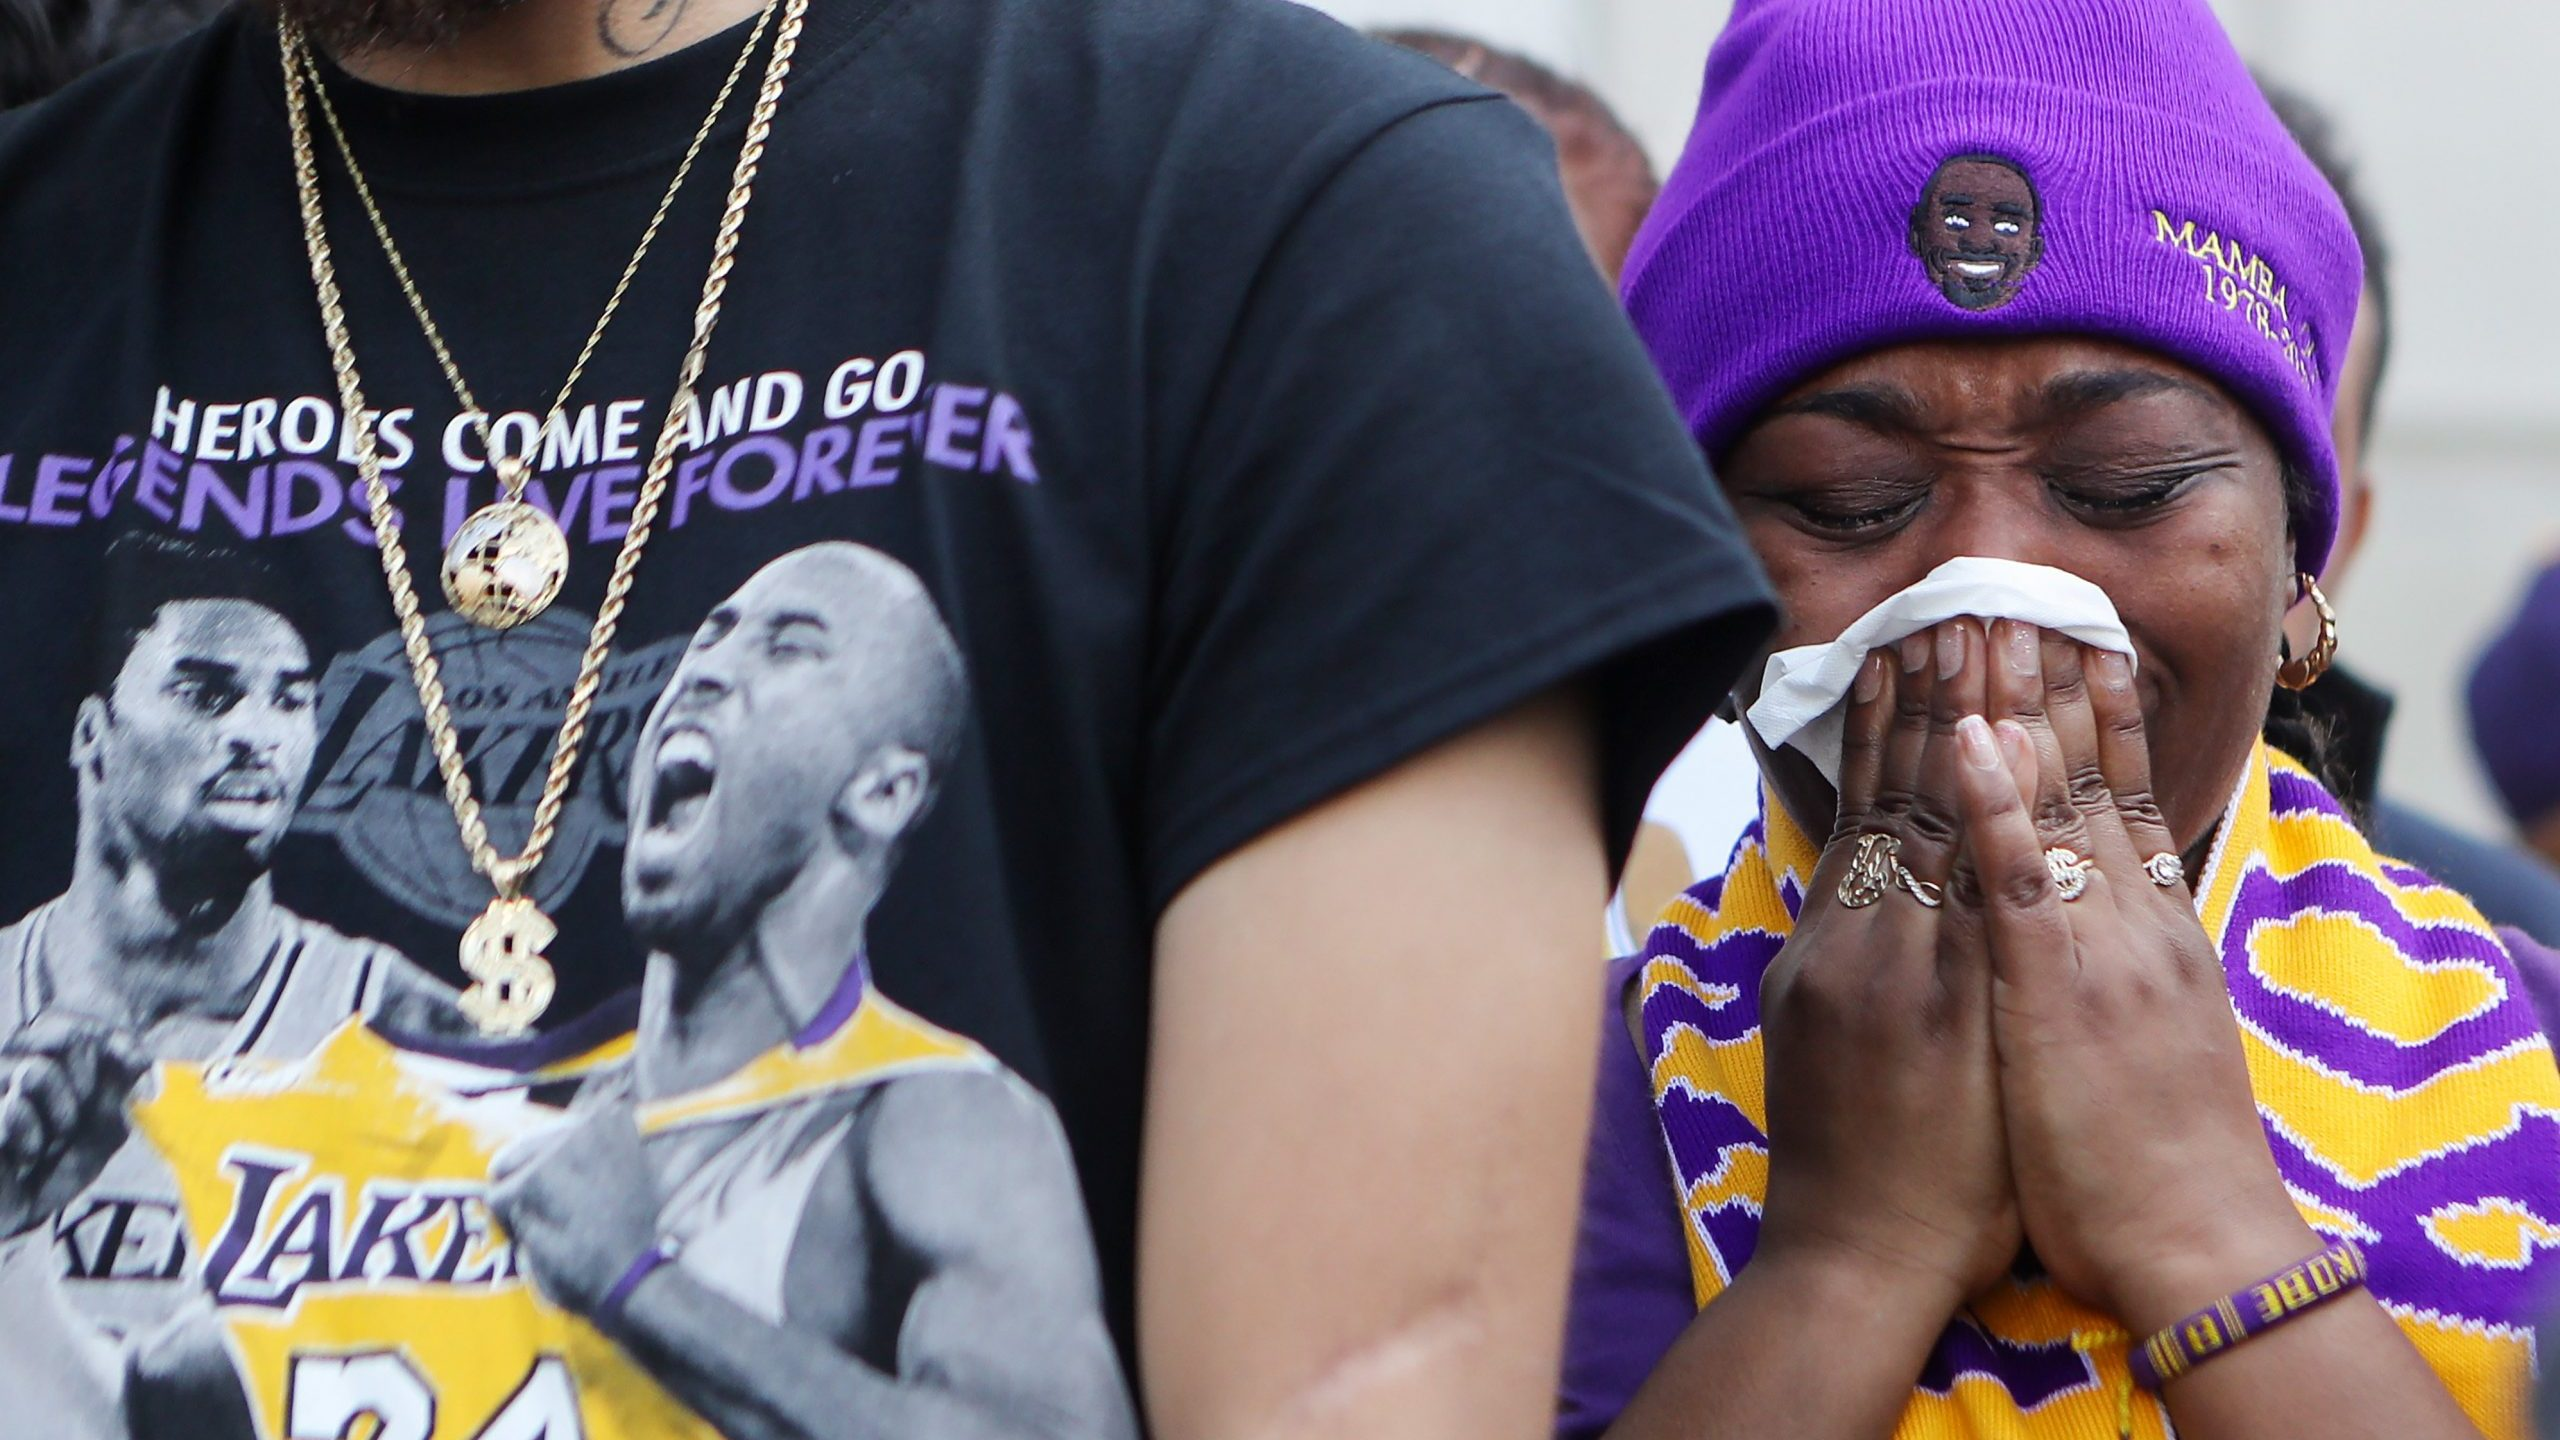 A fan becomes emotional while watching a live broadcast of Kobe and Gianna Bryant's memorial service on a fan's iPad outside the Staples Center on Feb. 24, 2020. (Credit: Mario Tama / Getty Images)